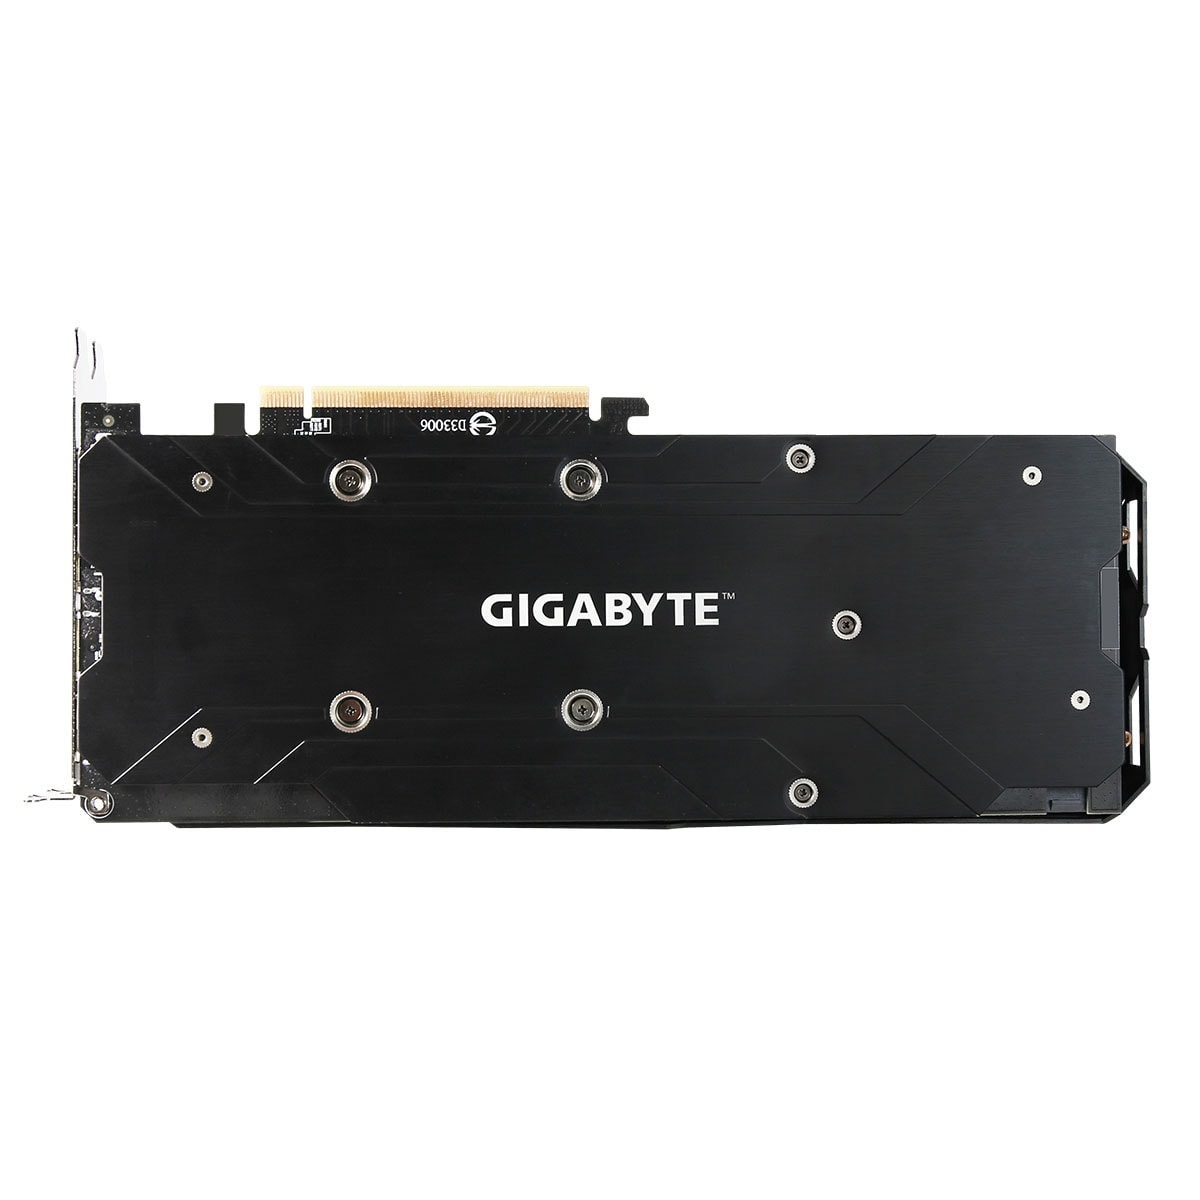 Gigabyte GeForce GTX 1060 G1 Gaming-6GD (GTX1060 G1 Gaming-6GD) - Achat / Vente Carte Graphique sur Cybertek.fr - 3